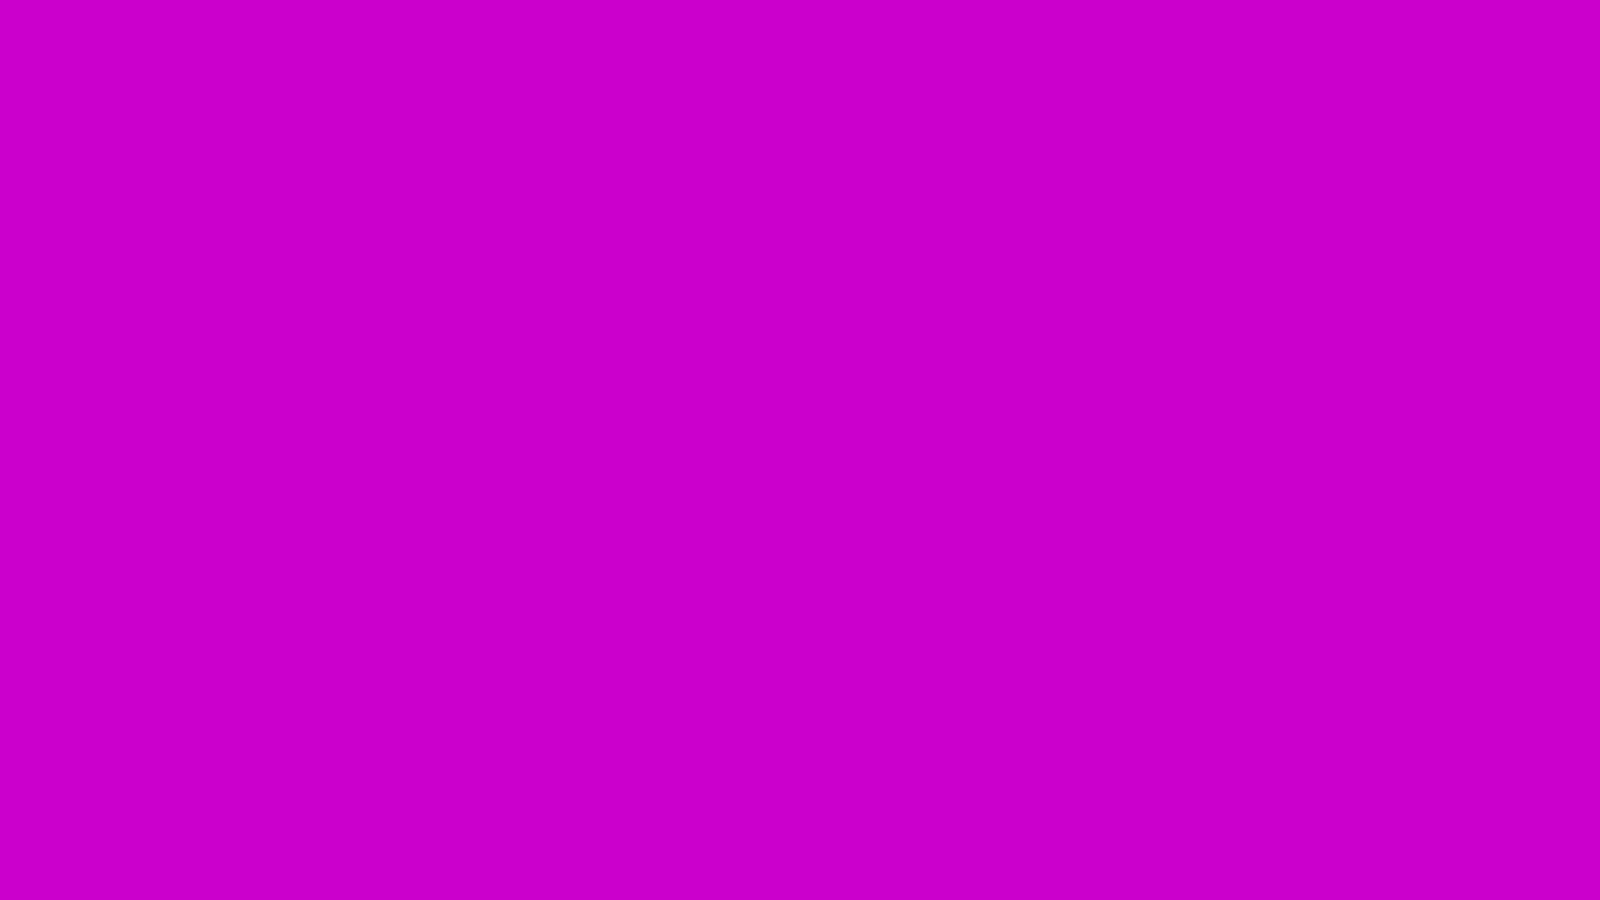 1600x900 Deep Magenta Solid Color Background